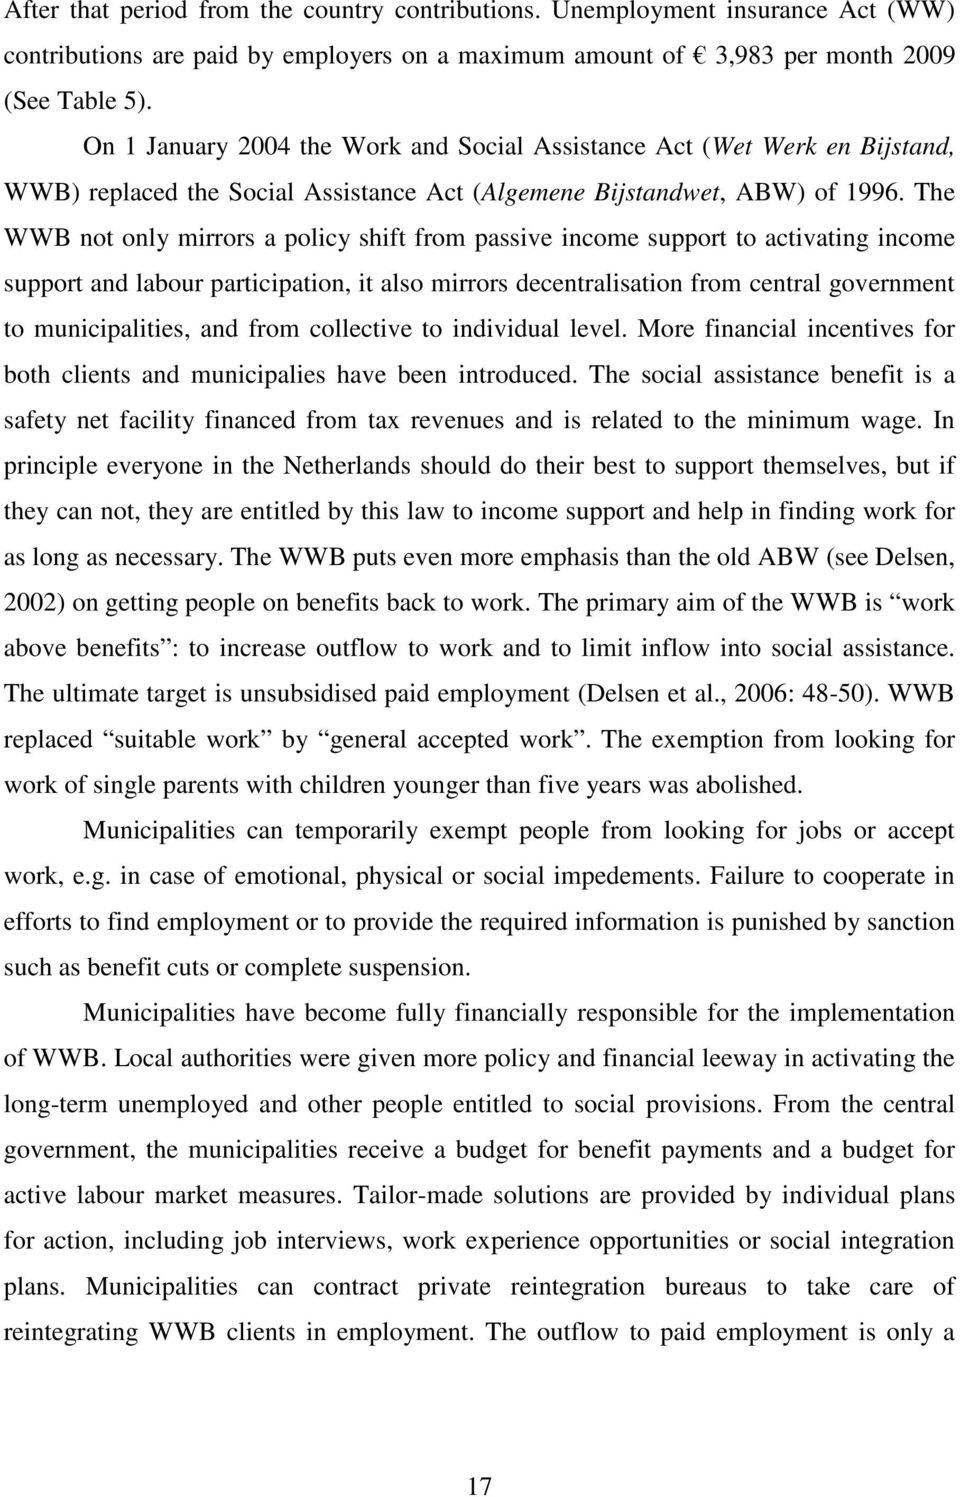 The WWB not only mirrors a policy shift from passive income support to activating income support and labour participation, it also mirrors decentralisation from central government to municipalities,